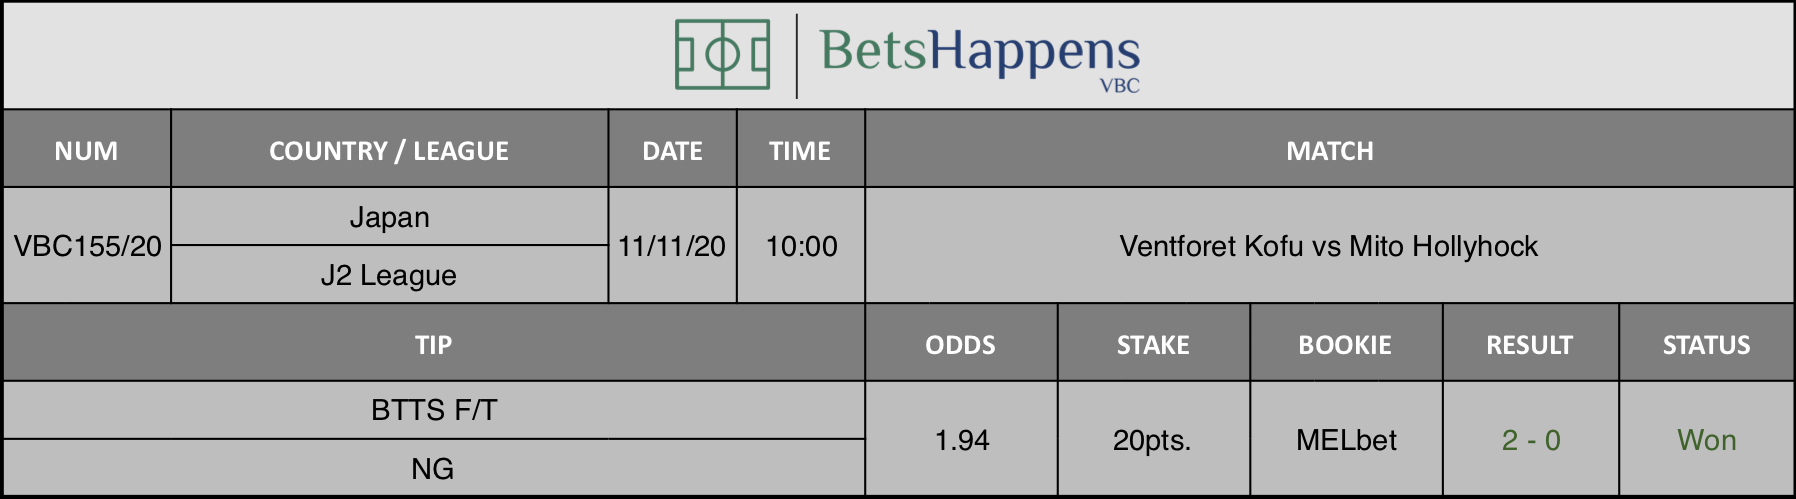 Results of our tip for the Ventforet Kofu vs Mito Hollyhock match where BTTS F/T  NG is recommended.